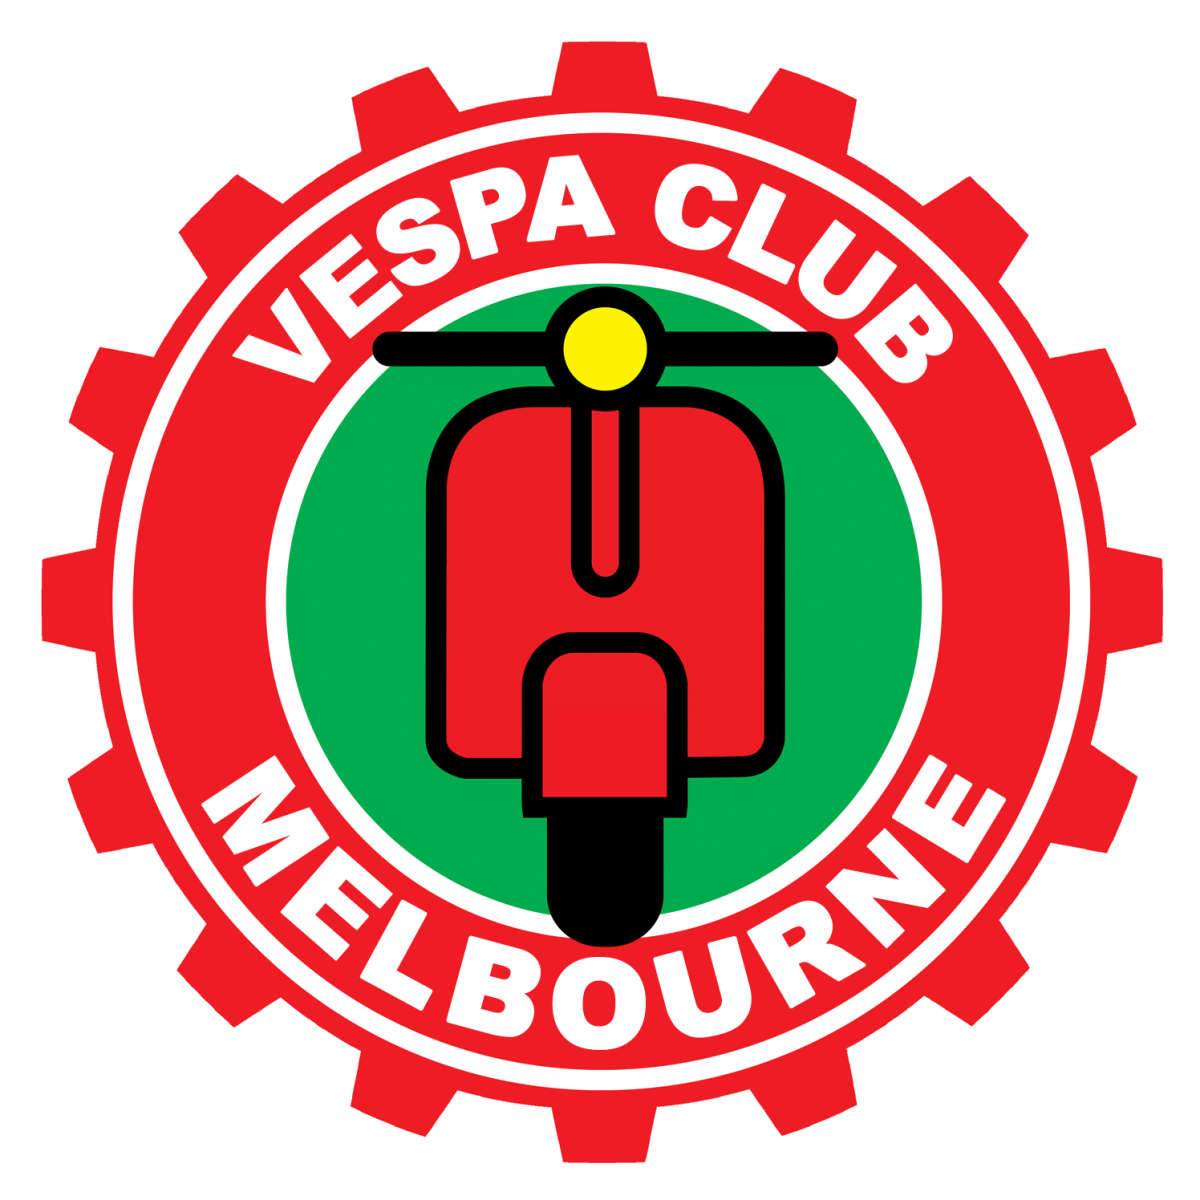 Vespa Club of Melbourne